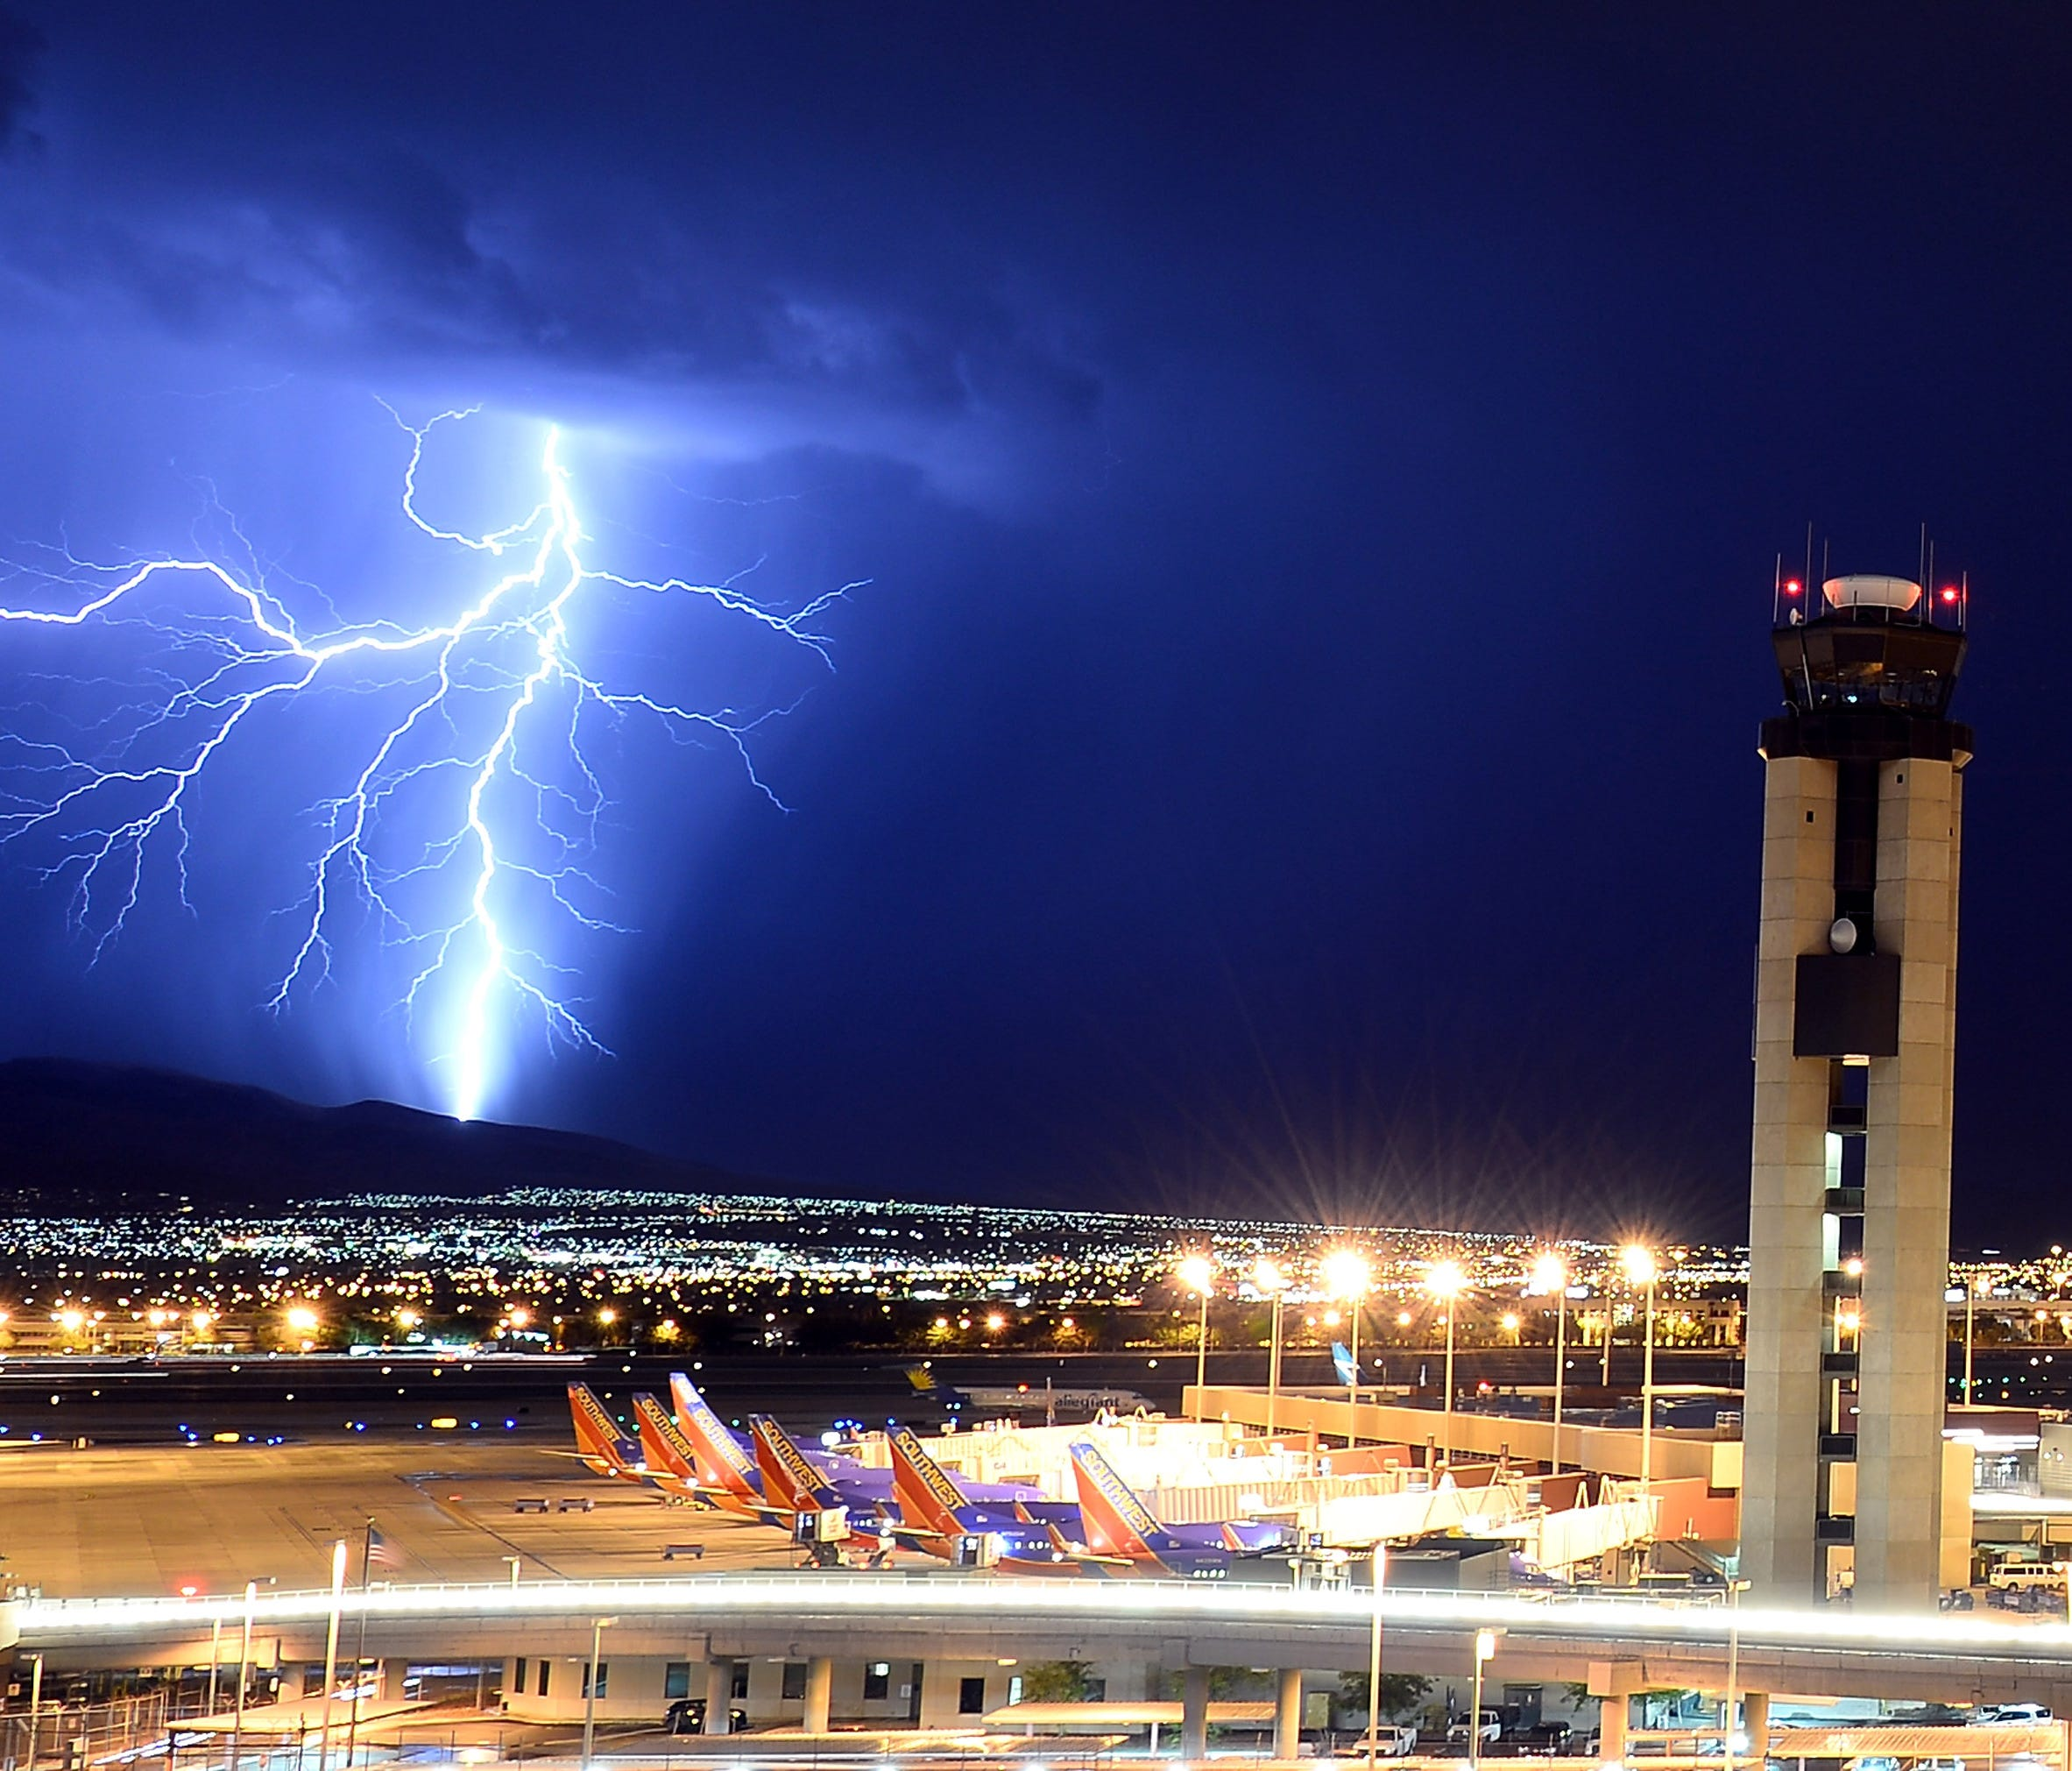 Lightning flashes behind an air traffic control tower at Las Vegas McCarran International Airport on Aug. 18, 2013.